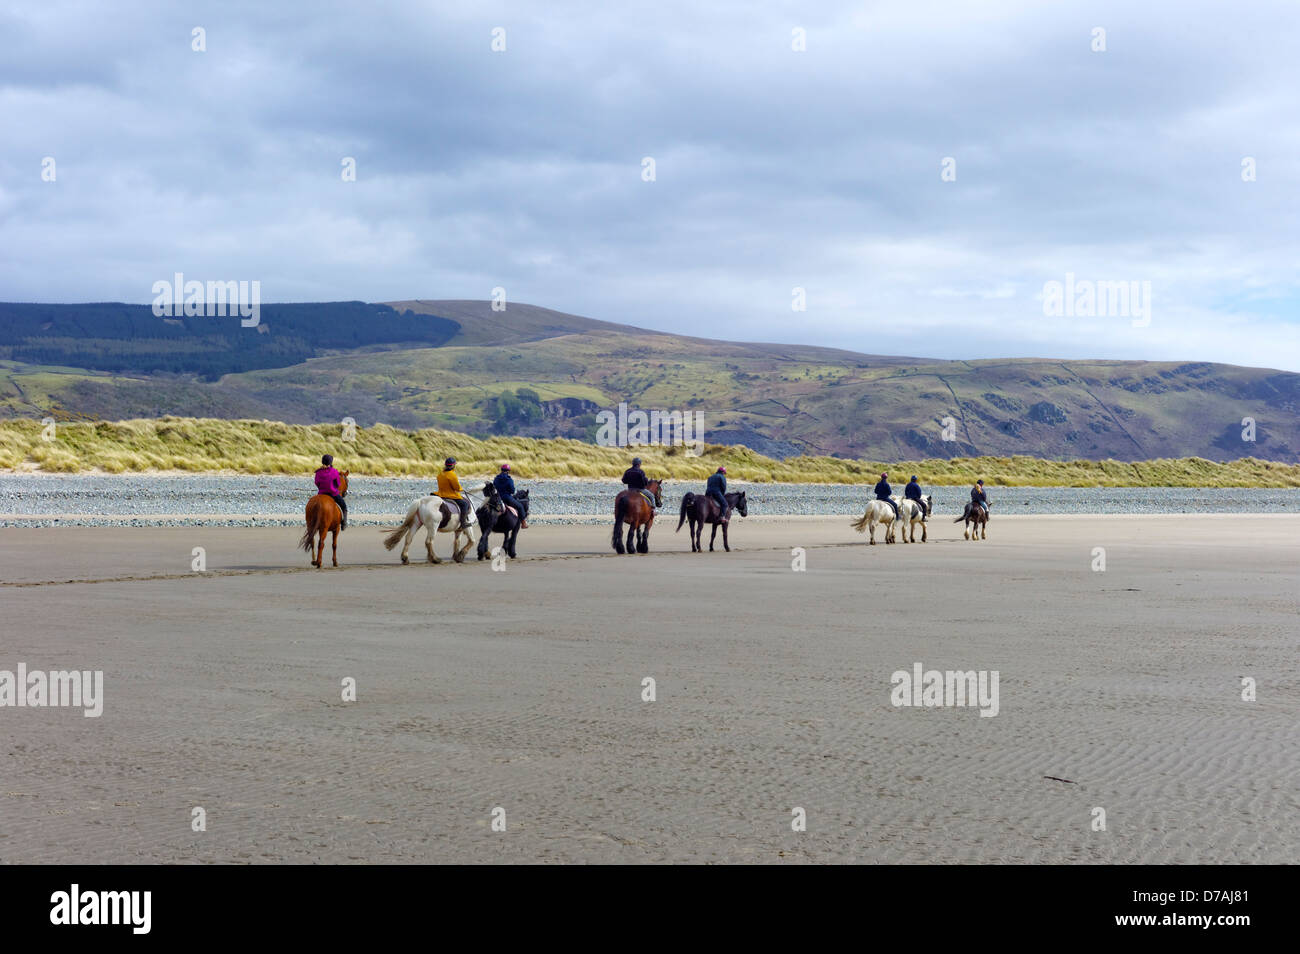 A group of horses and ponies with riders are trekking in a line on the beach with the sea and mountains in the background. - Stock Image